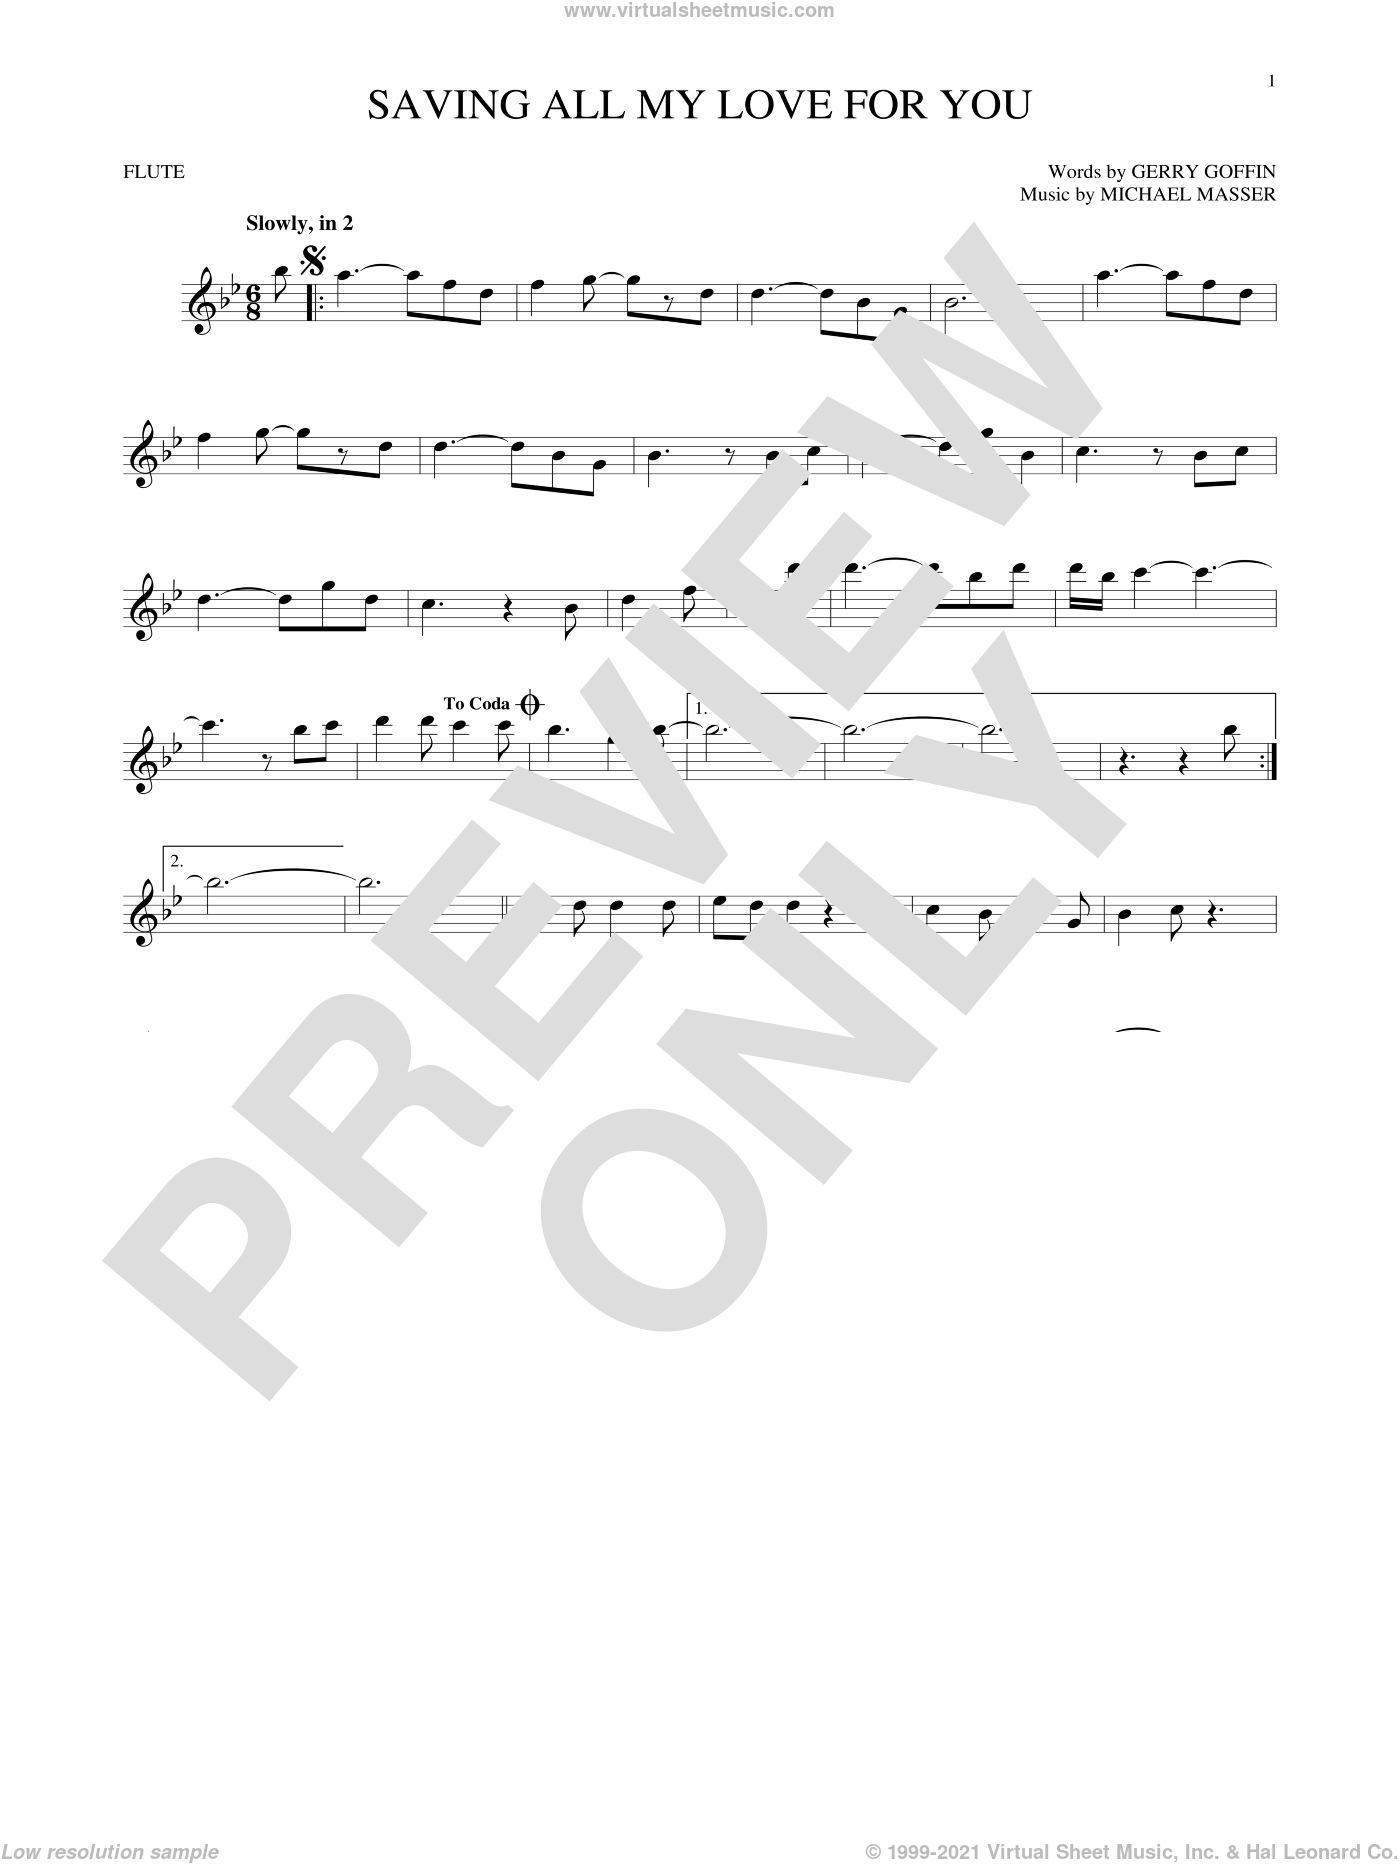 Saving All My Love For You sheet music for flute solo by Whitney Houston, Gerry Goffin and Michael Masser, intermediate skill level